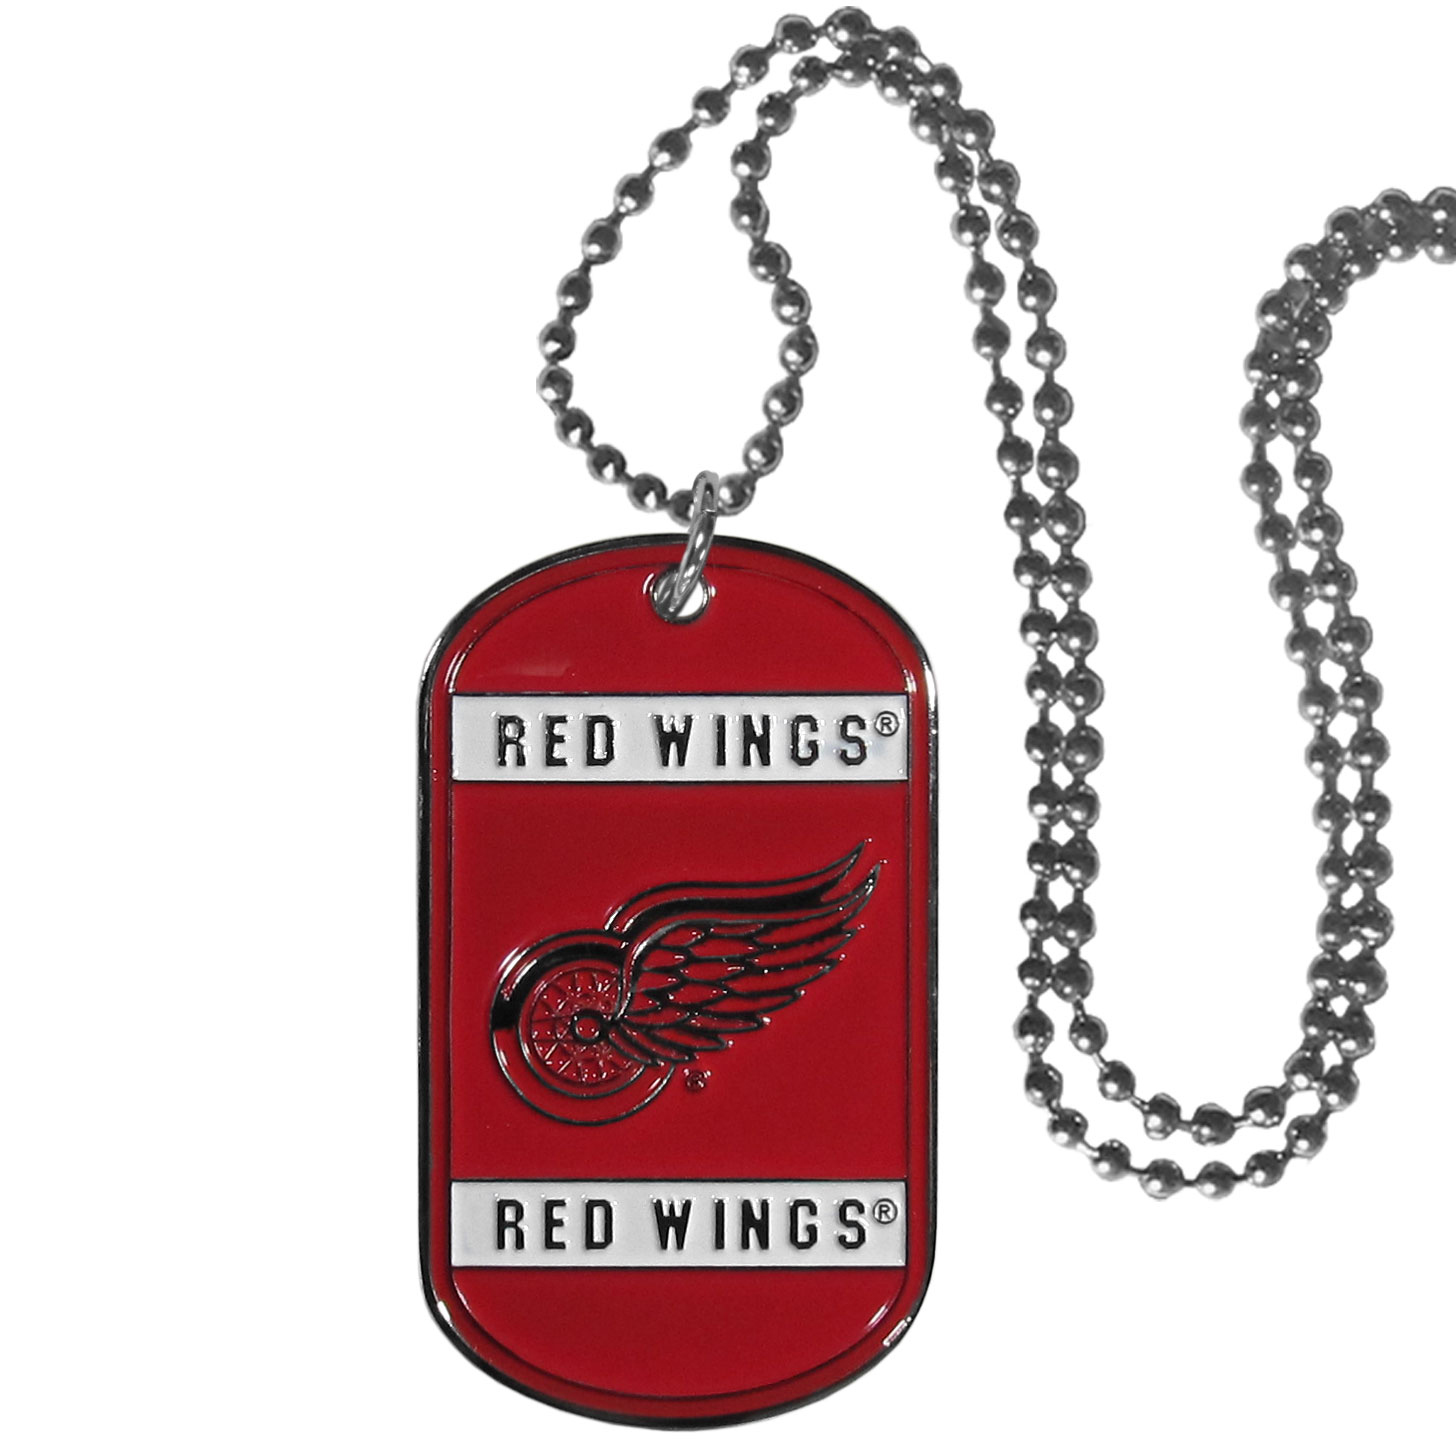 Detroit Red Wings® Tag Necklace - Expertly crafted Detroit Red Wings® tag necklaces featuring fine detailing and a hand enameled finish with chrome accents. 26 inch chain.